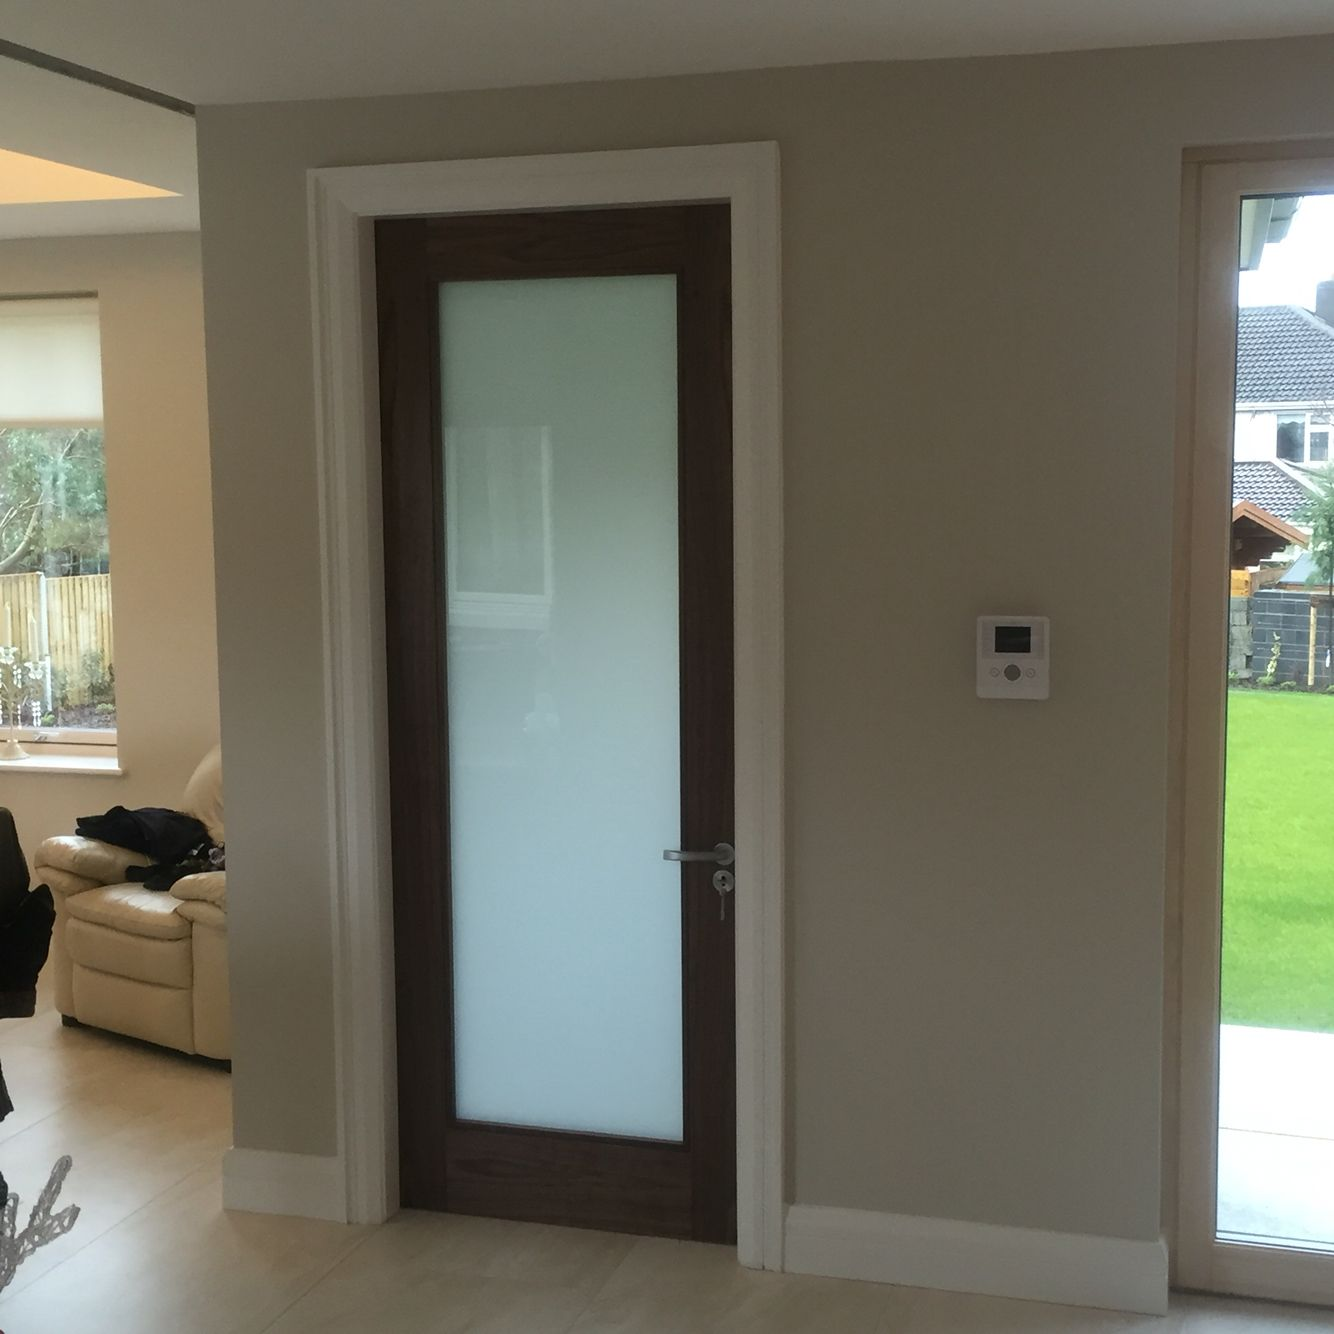 Walnut internal door with frosted glass